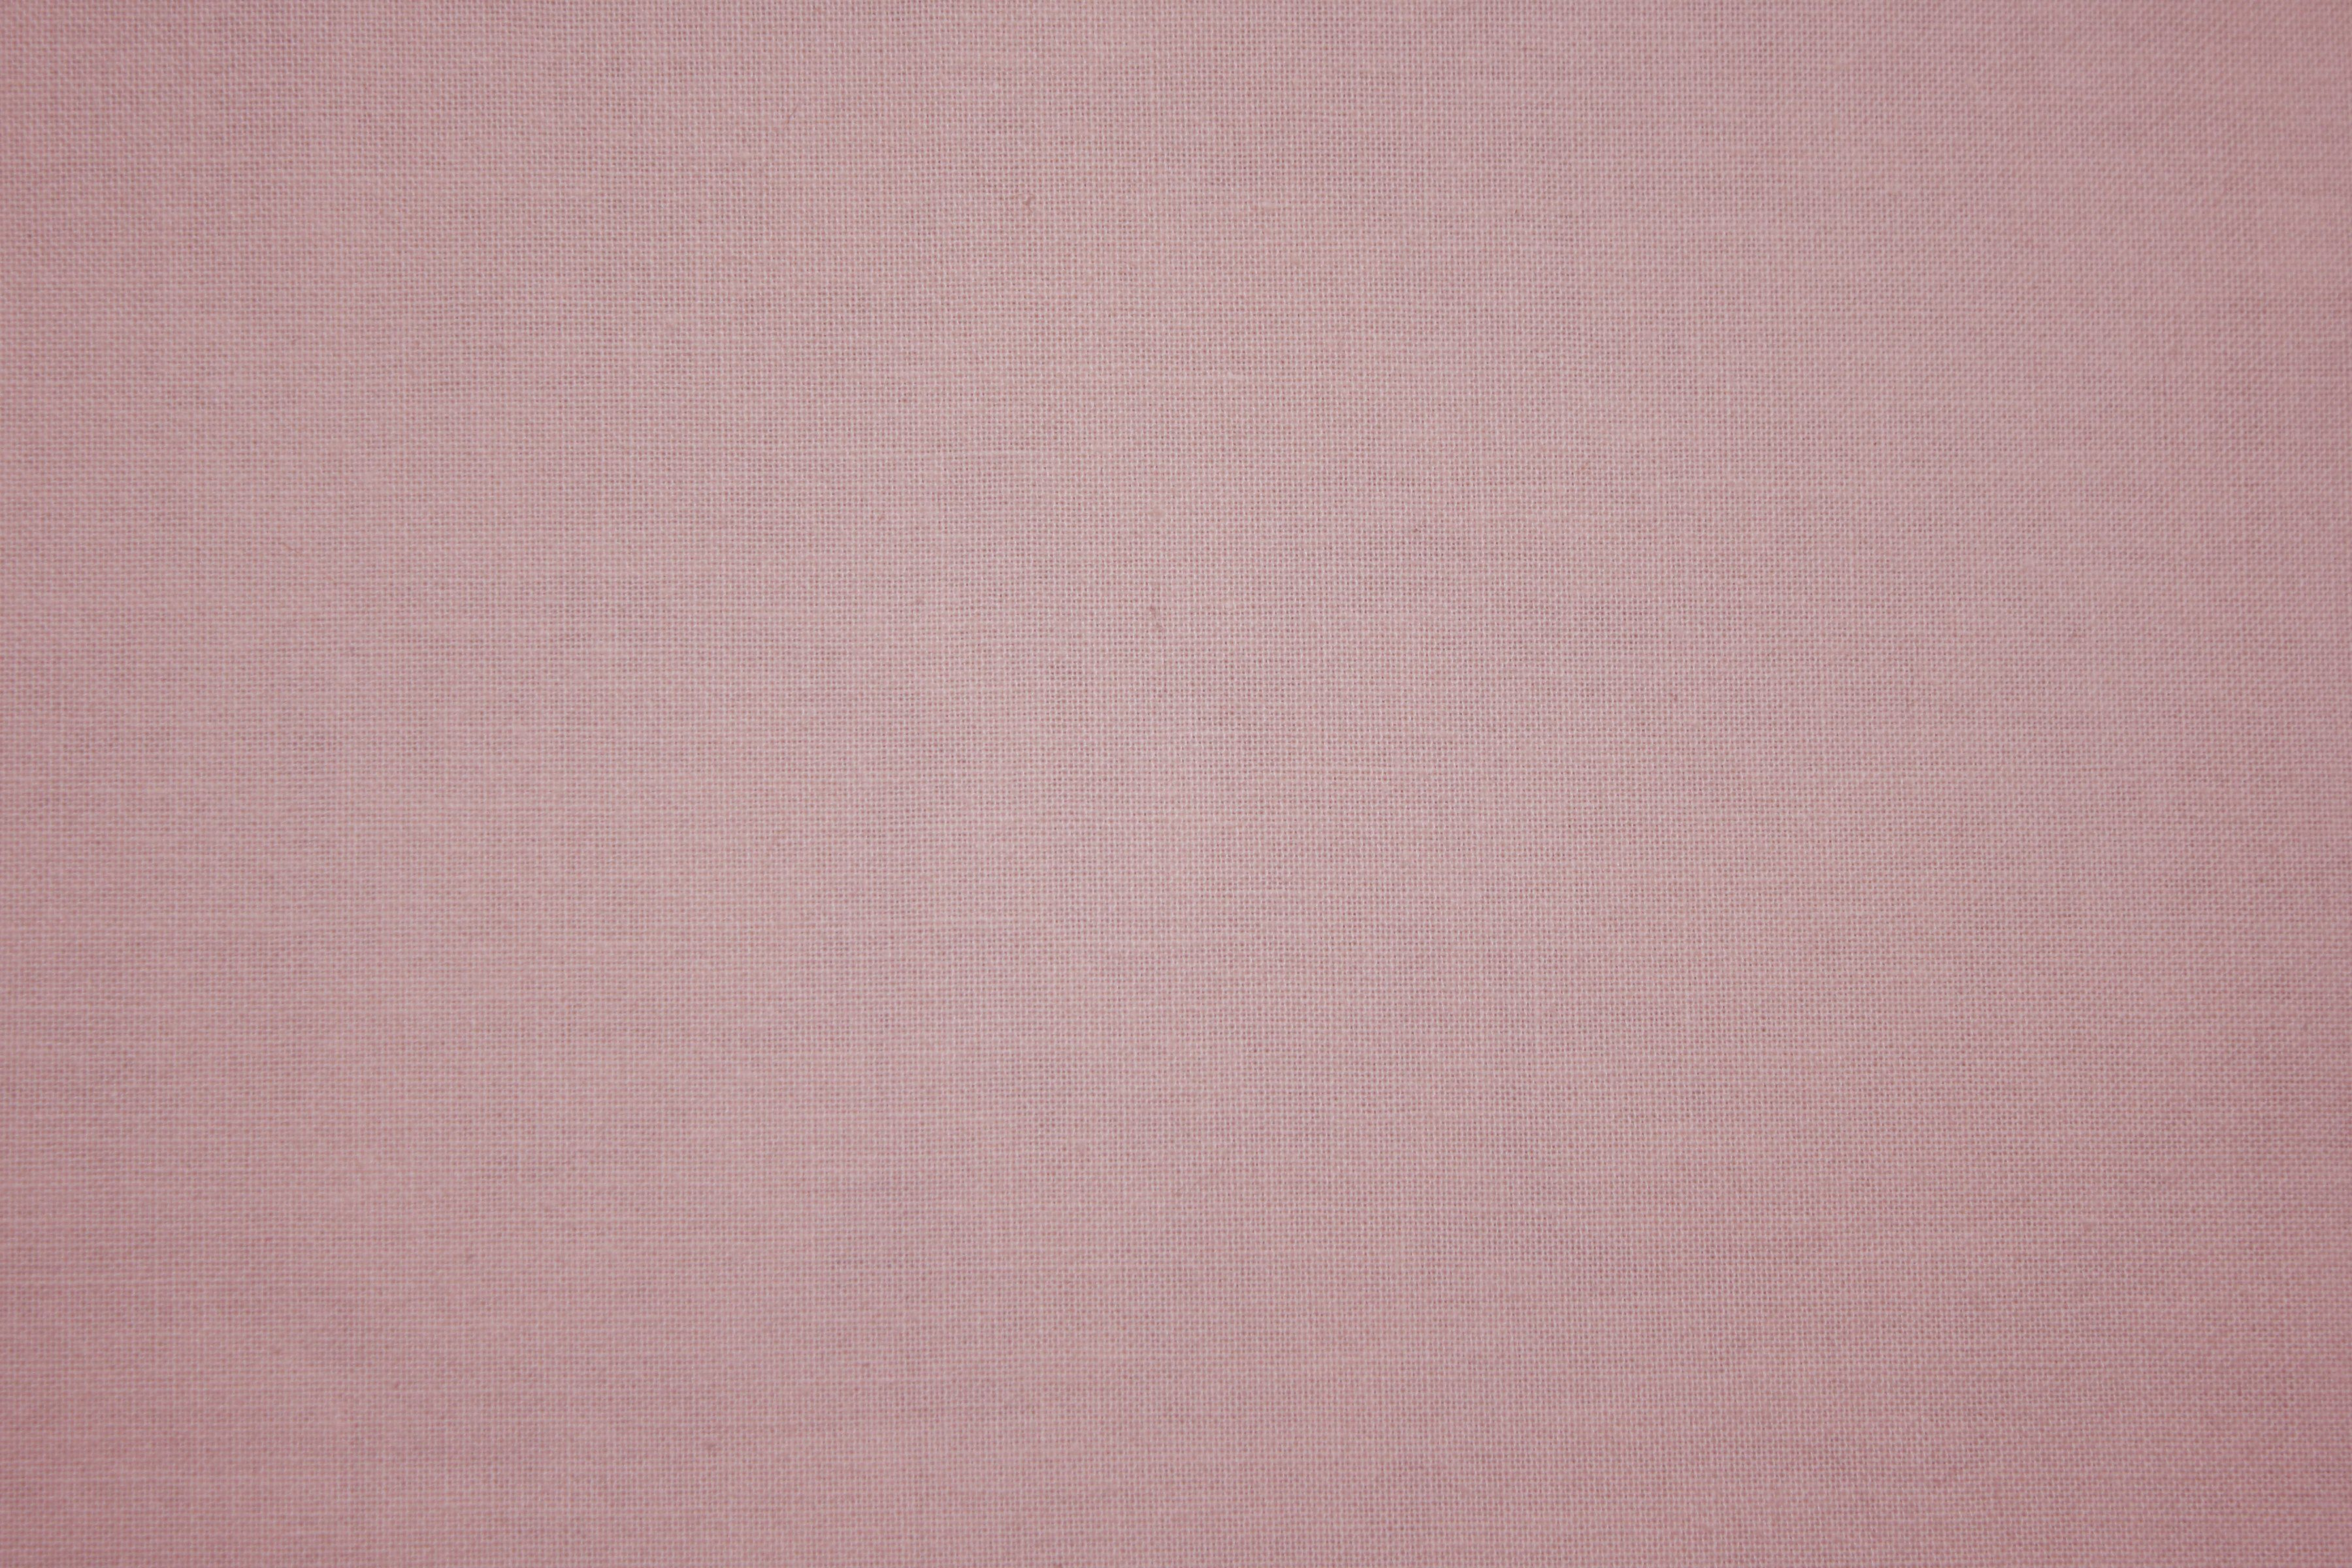 Dusty Rose Canvas Fabric Texture Pink And Grey Wallpaper Dusty Rose Fabric Texture Dusty pink color wallpaper